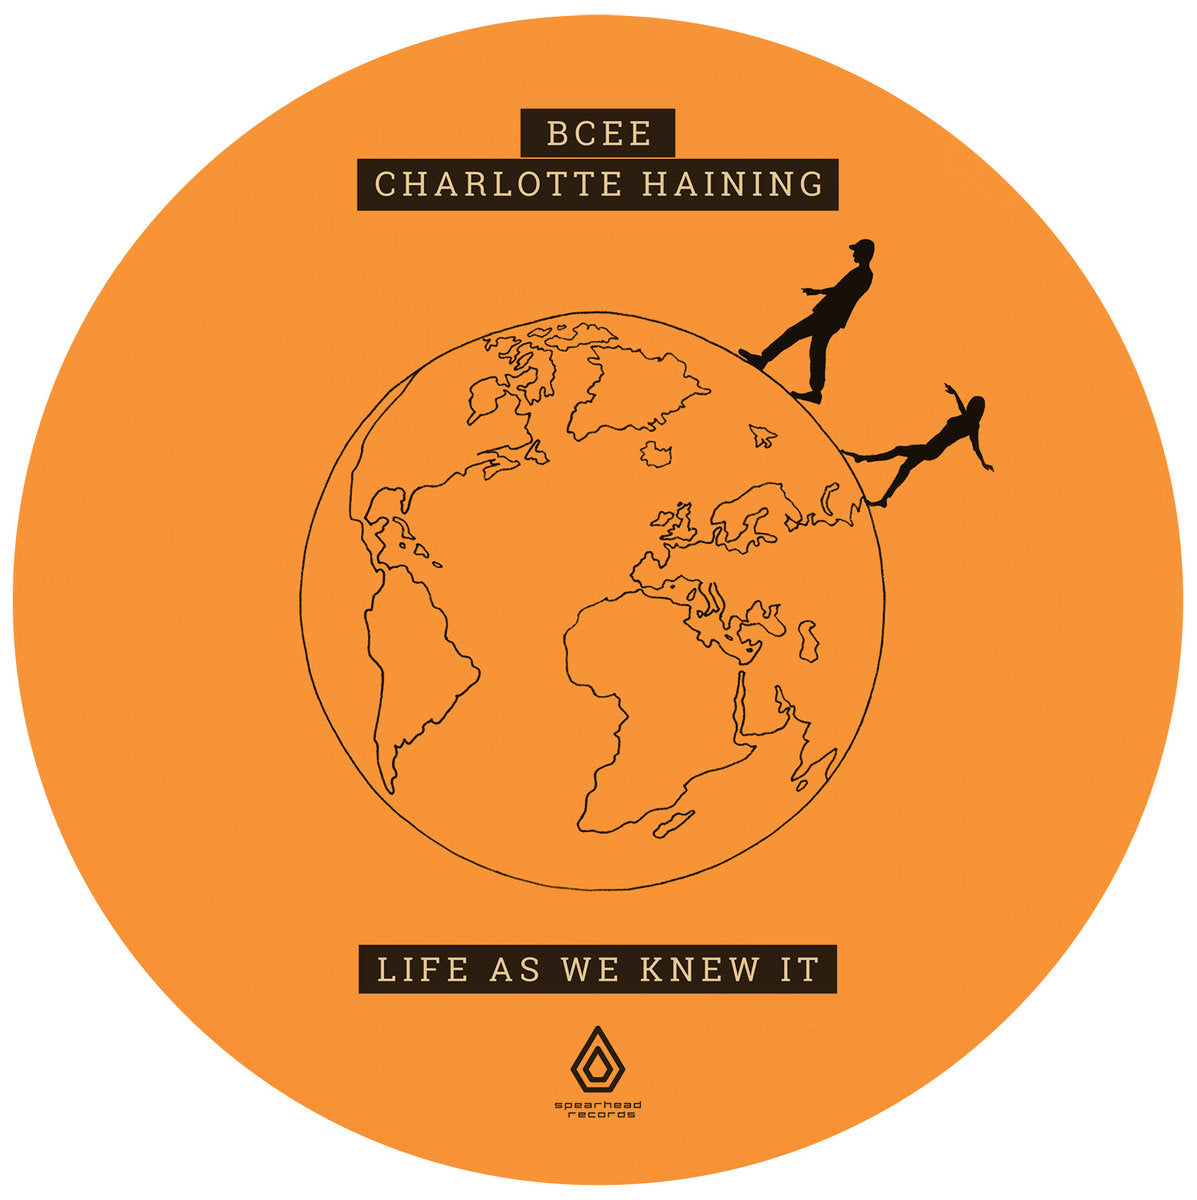 "BCee & Charlotte Haining - Life As We Knew It - 2 x 12"" Picture Disc & Download - Strictly Limited Edition - Pre-order"